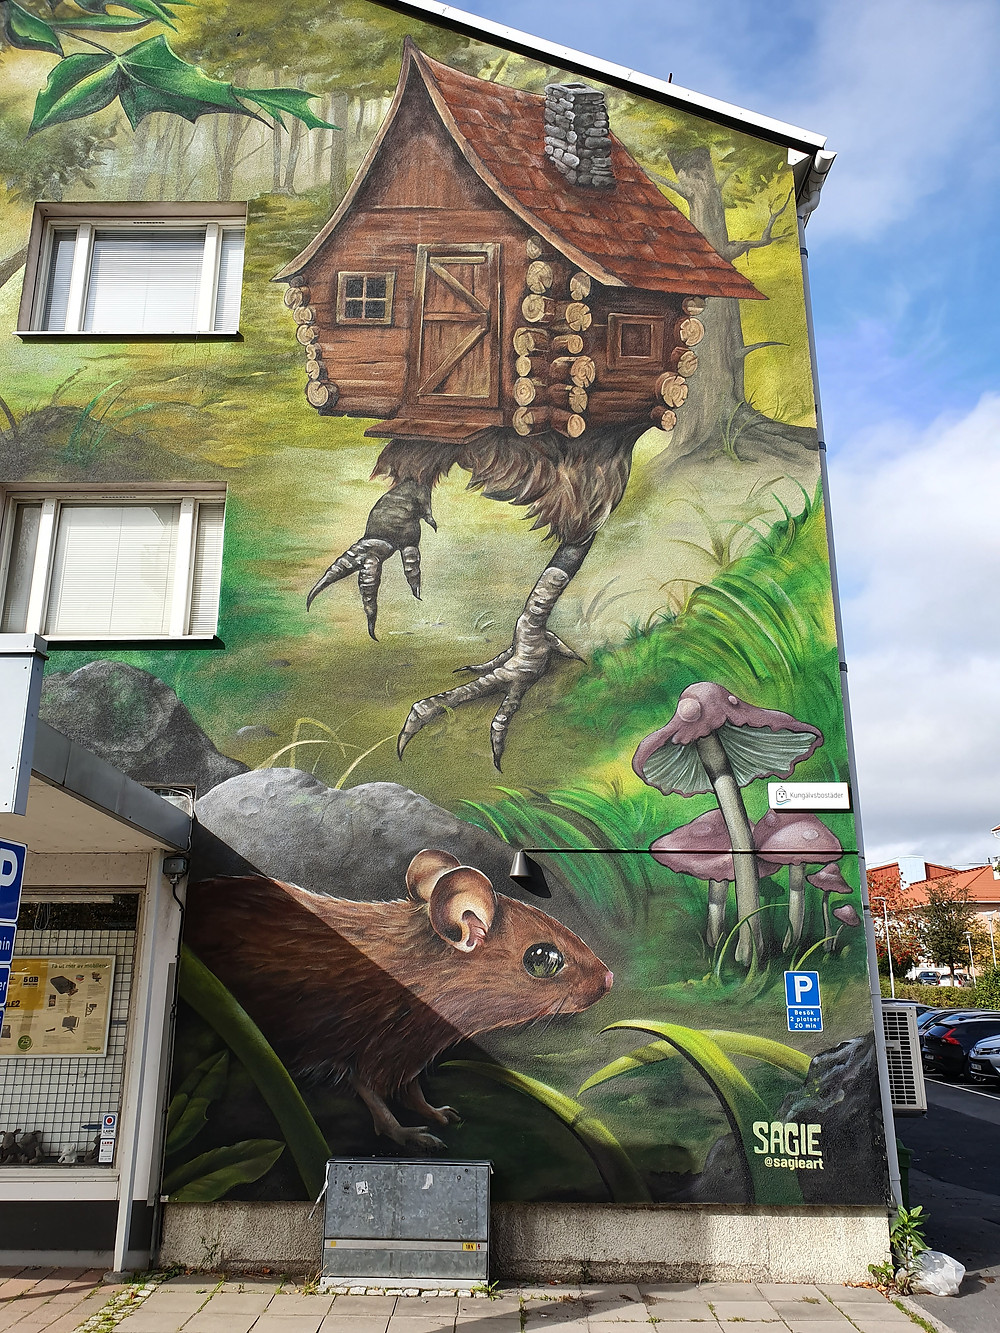 Sagie from Gothenburg, Sweden did this Street Art piece for Artscape Saga, inspired by the russion fairytale of Baba Yaga.